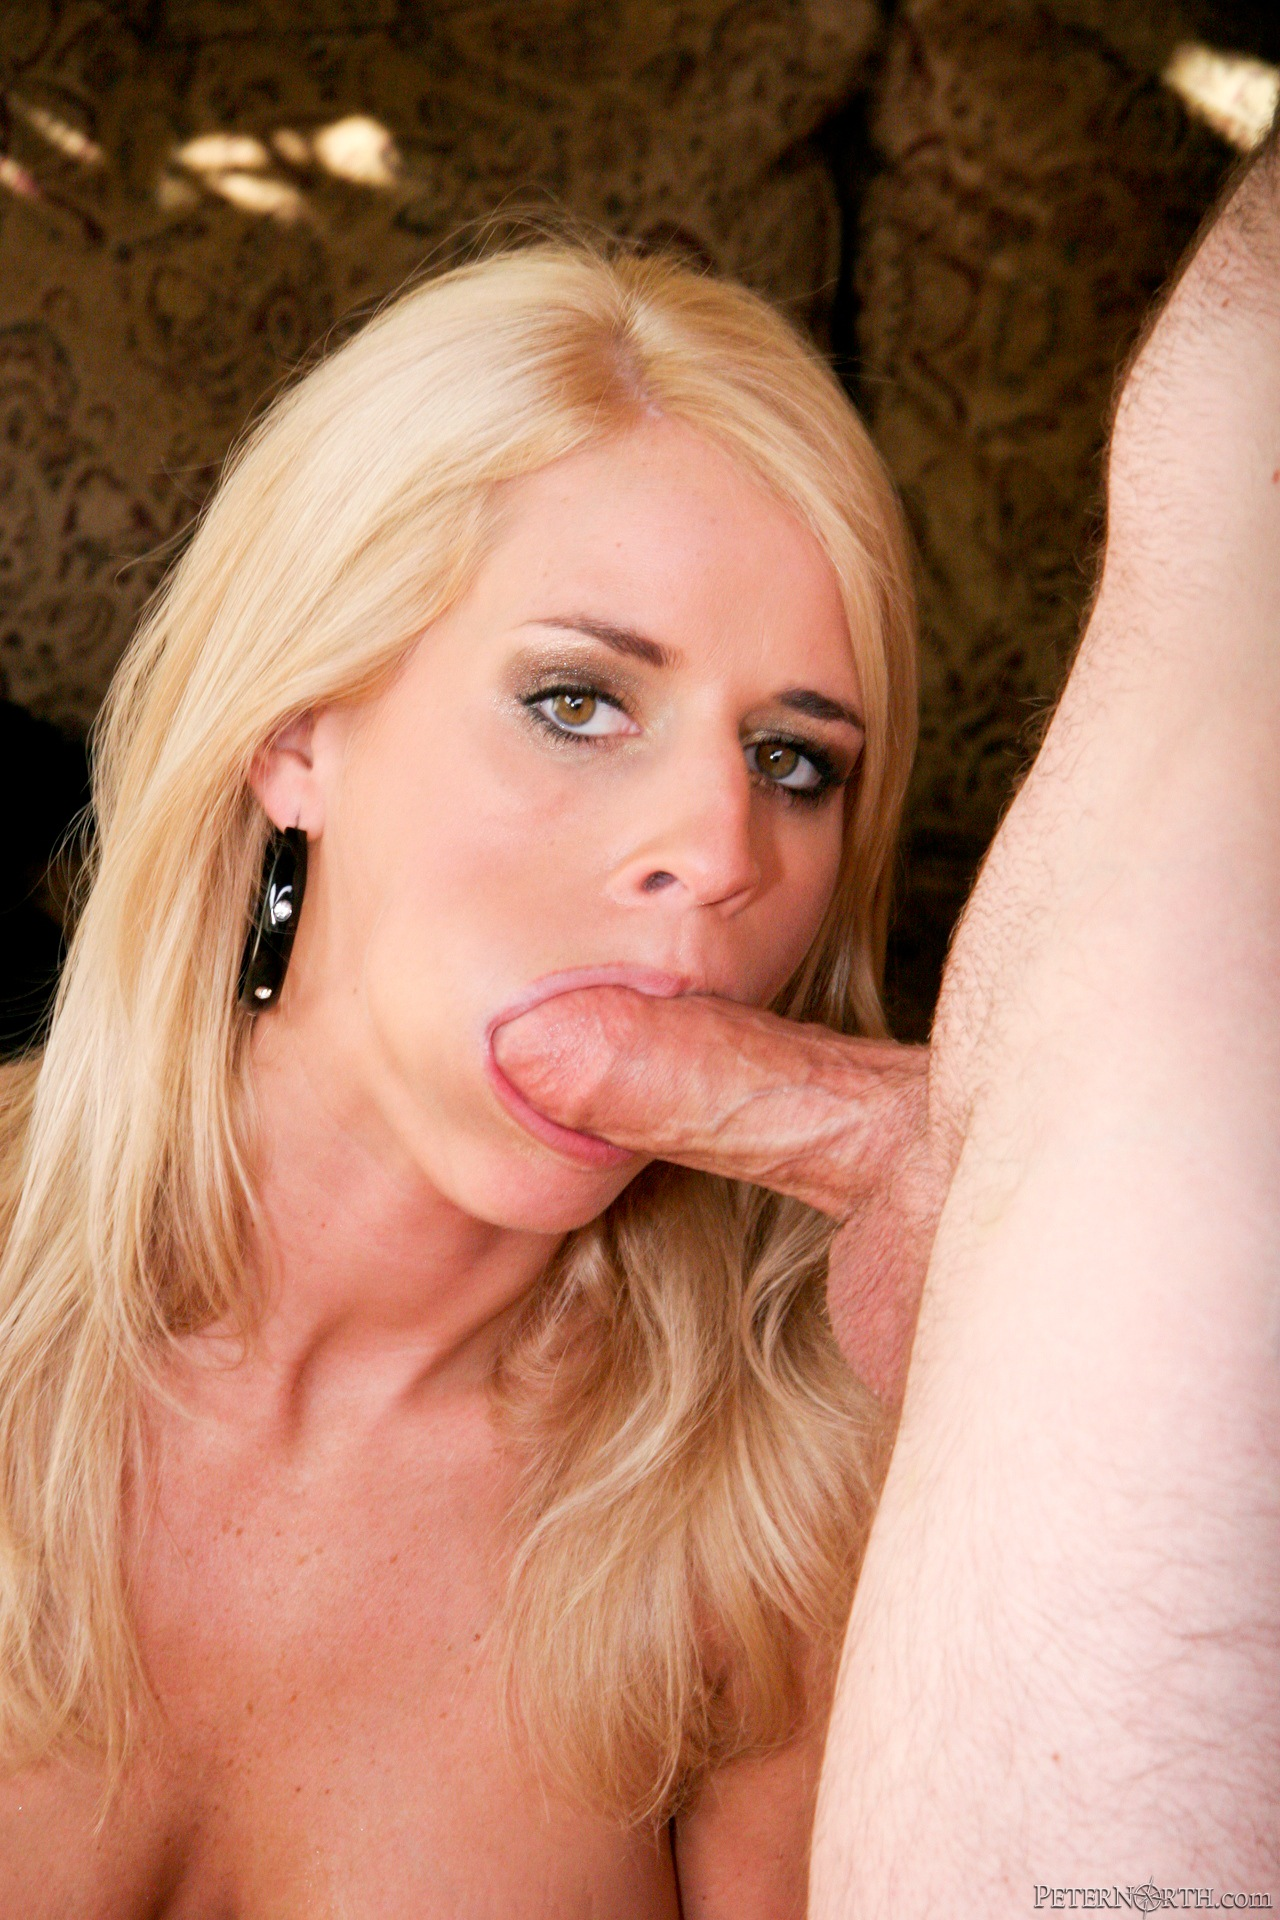 Tender lips polishing dick with delicious temptress